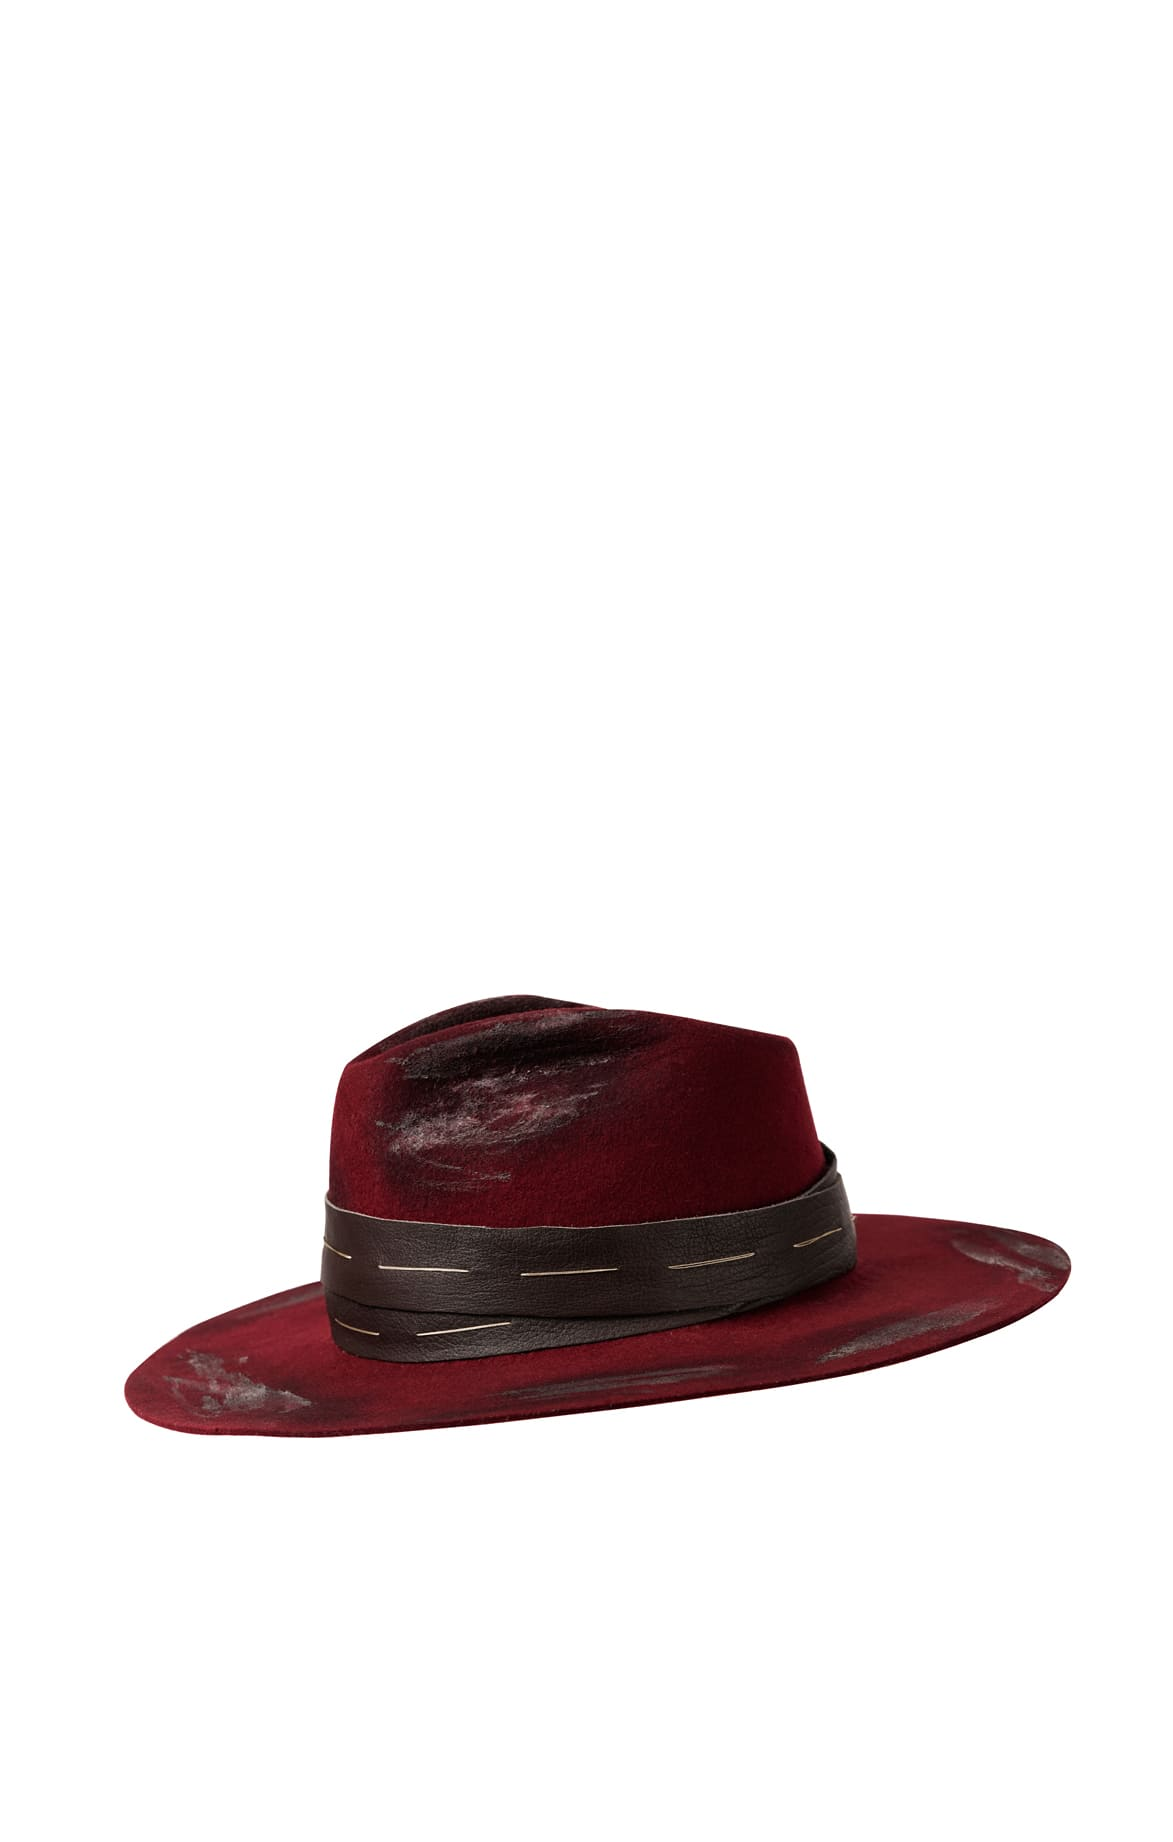 Rustic Red Fedora Hat